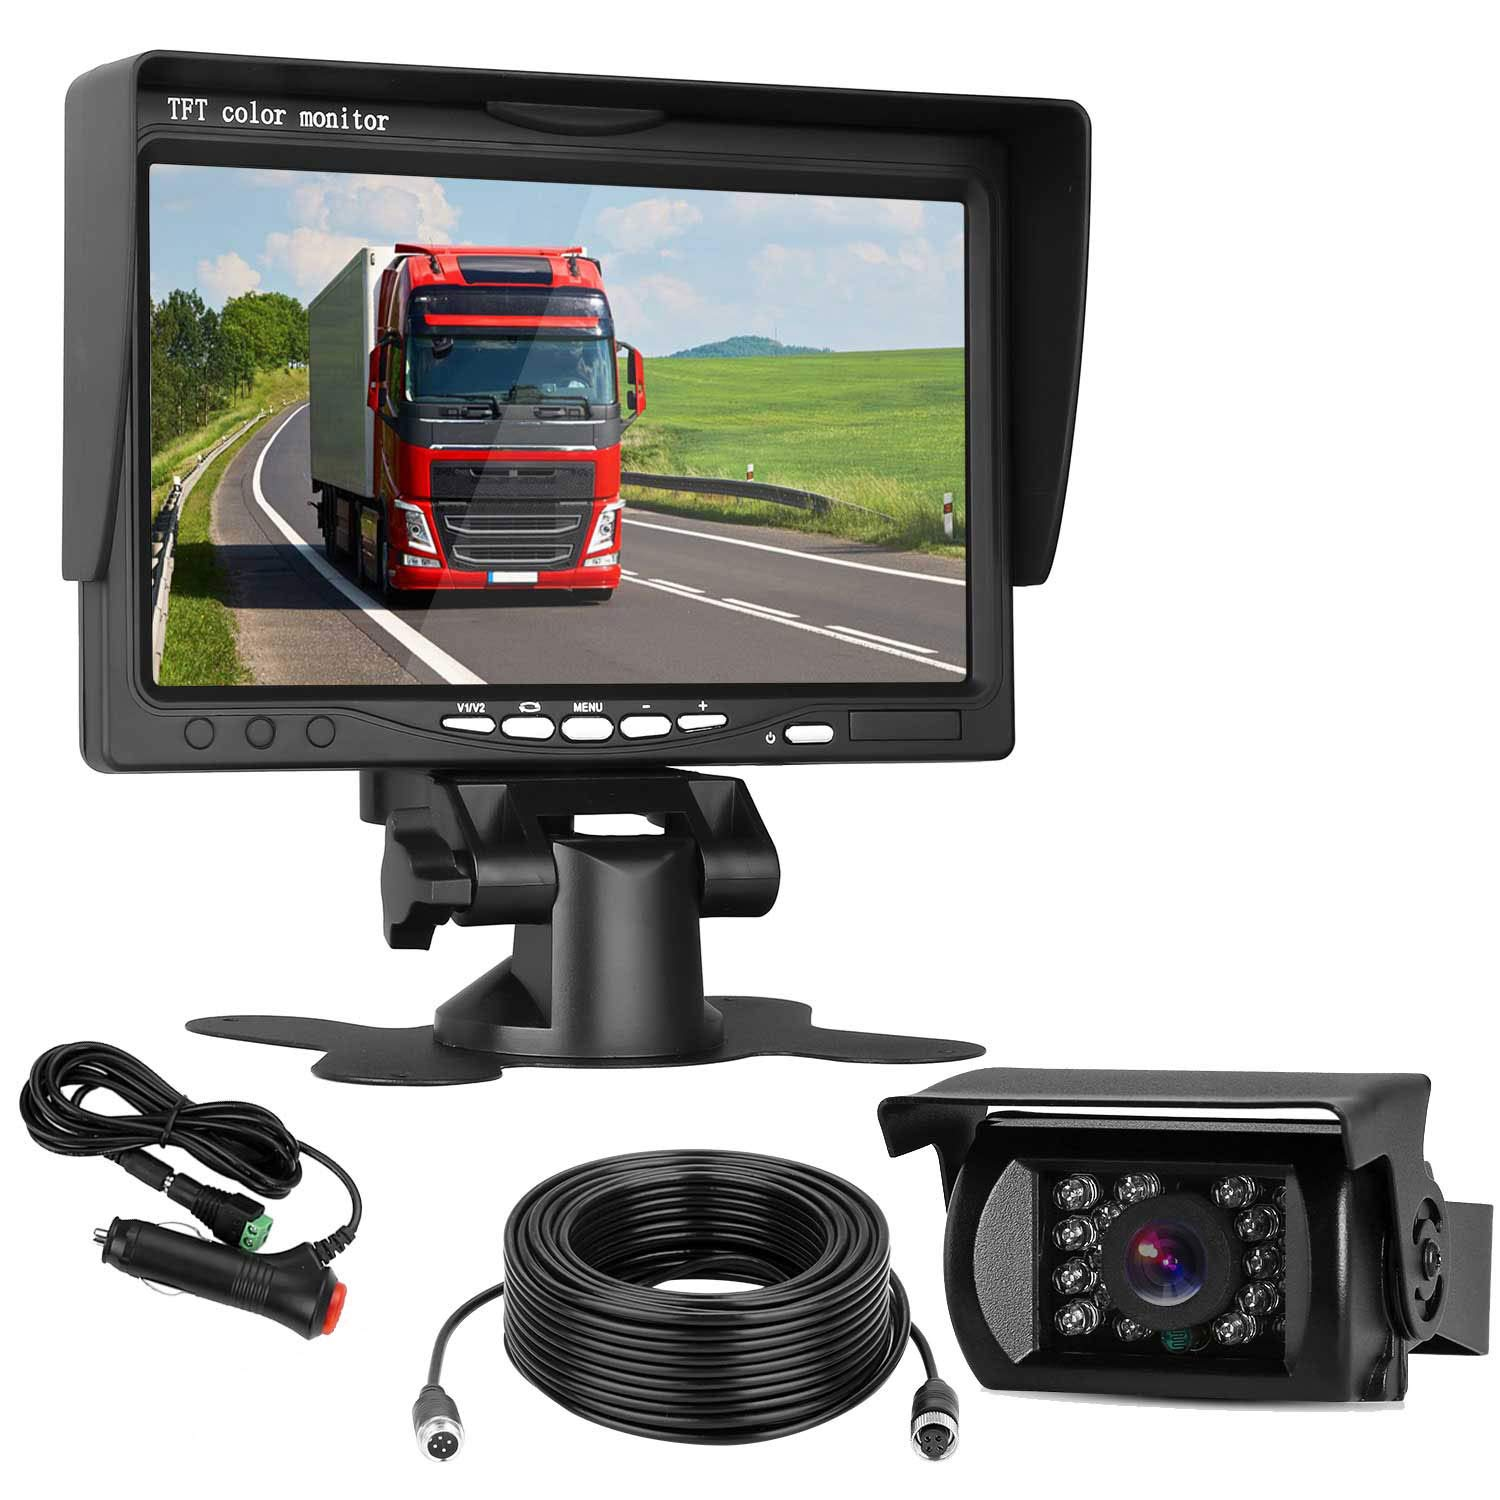 ZSMJ Backup Camera and Monitor Kit Reverse Camera Single Power for Rear View Full-time View Options Parking Assistance System Wired Waterproof for Truck